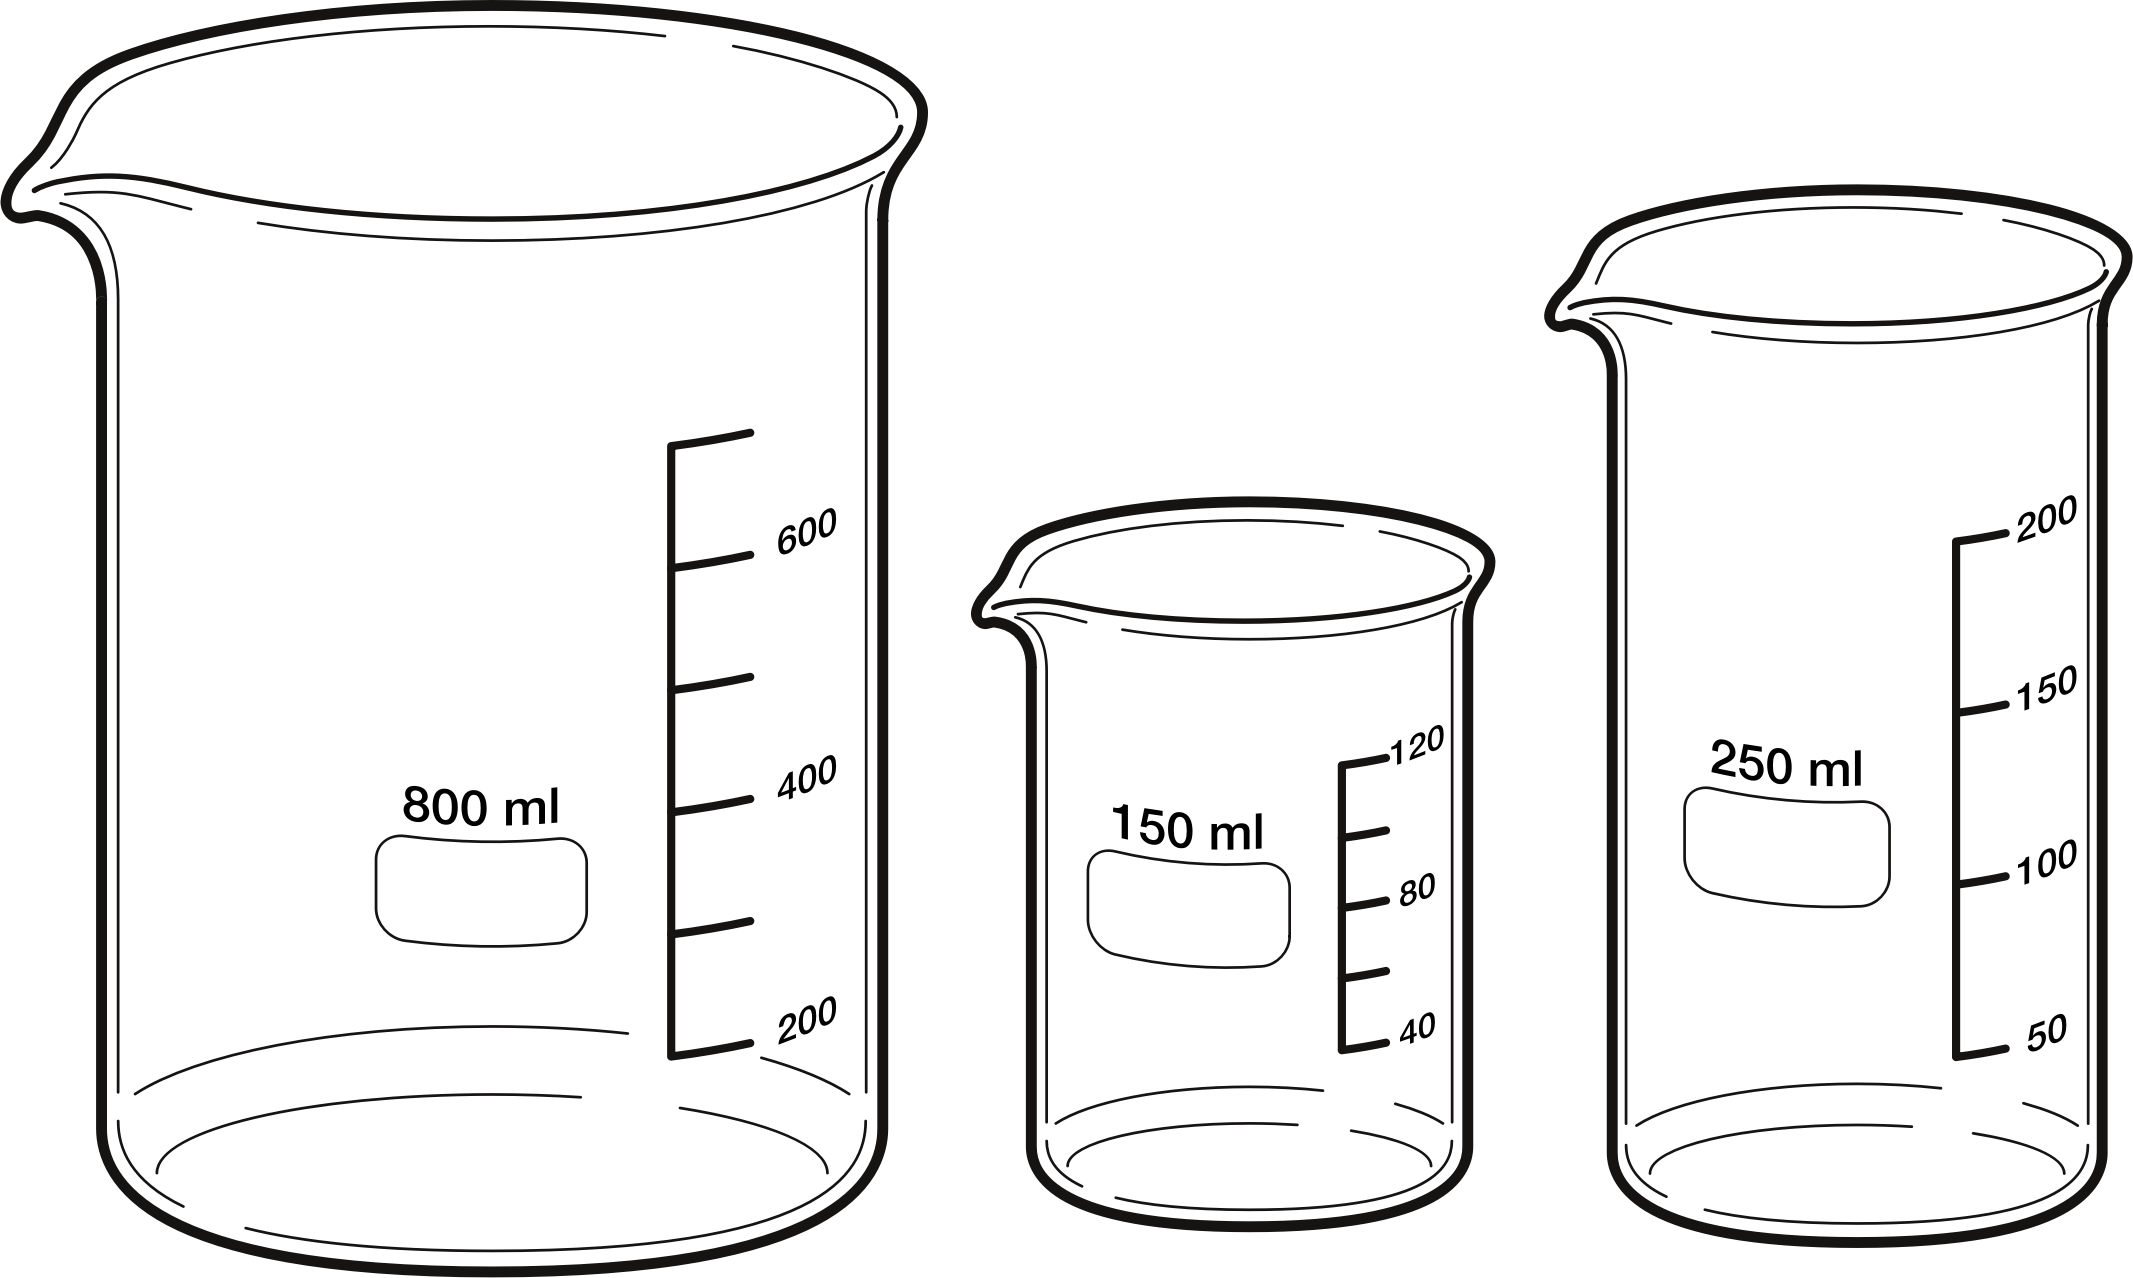 image royalty free library Clipart beakers big image. Beaker transparent